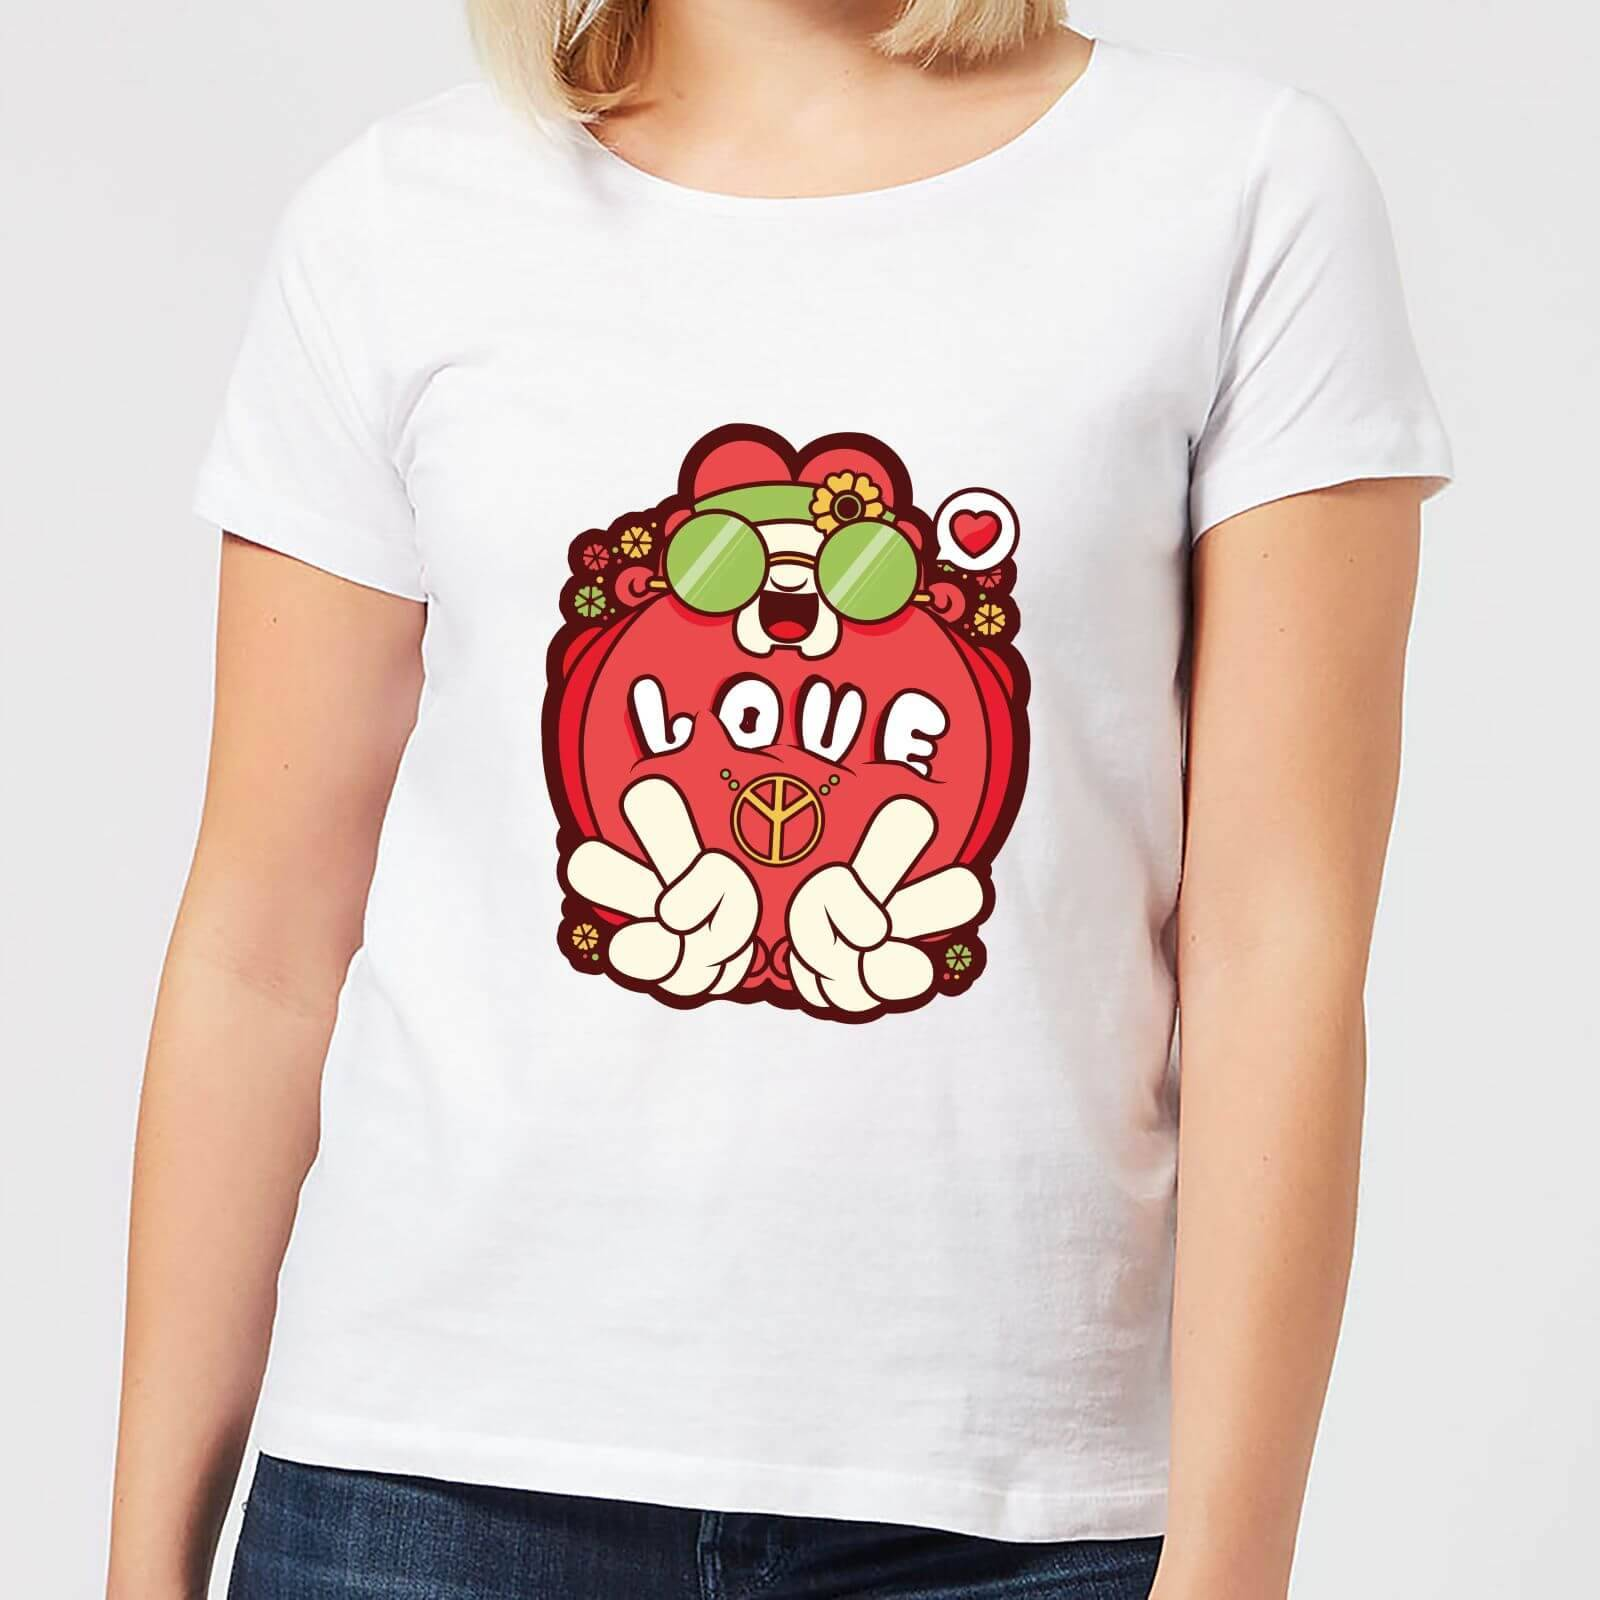 IWOOT Hippie Love Cartoon Women's T-Shirt - White - XS - White